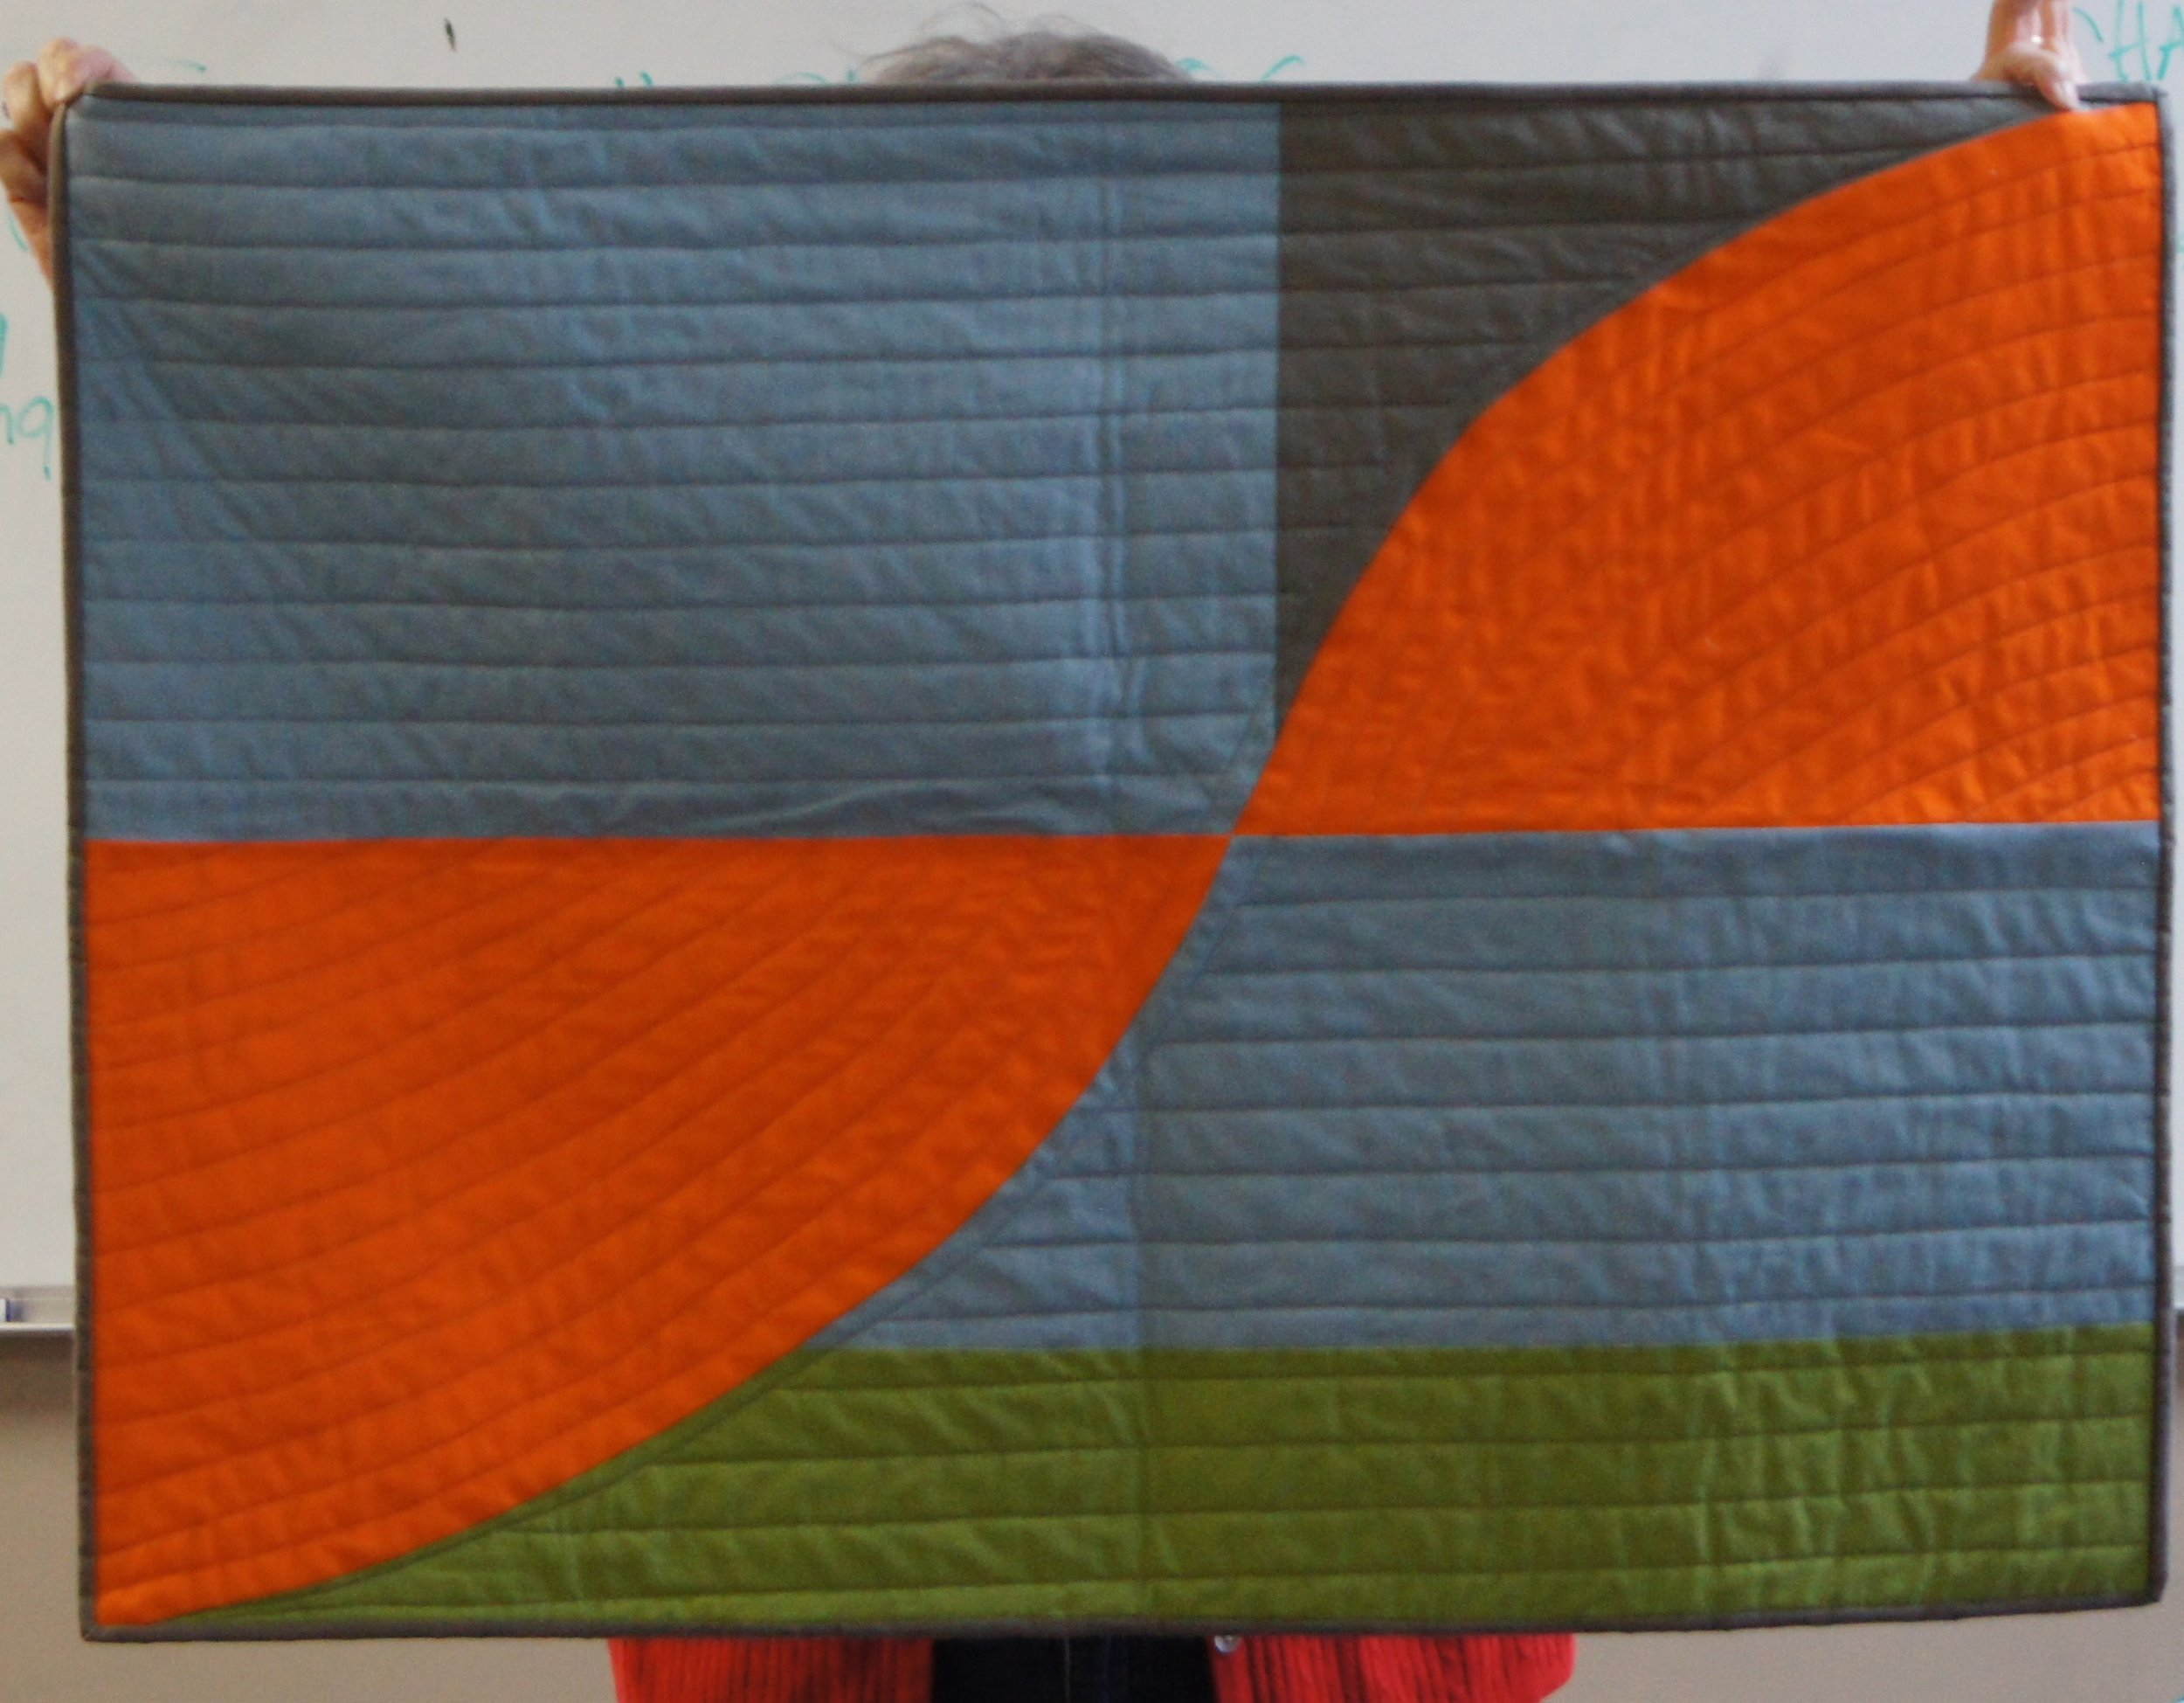 Quilt by Patricia Steadman